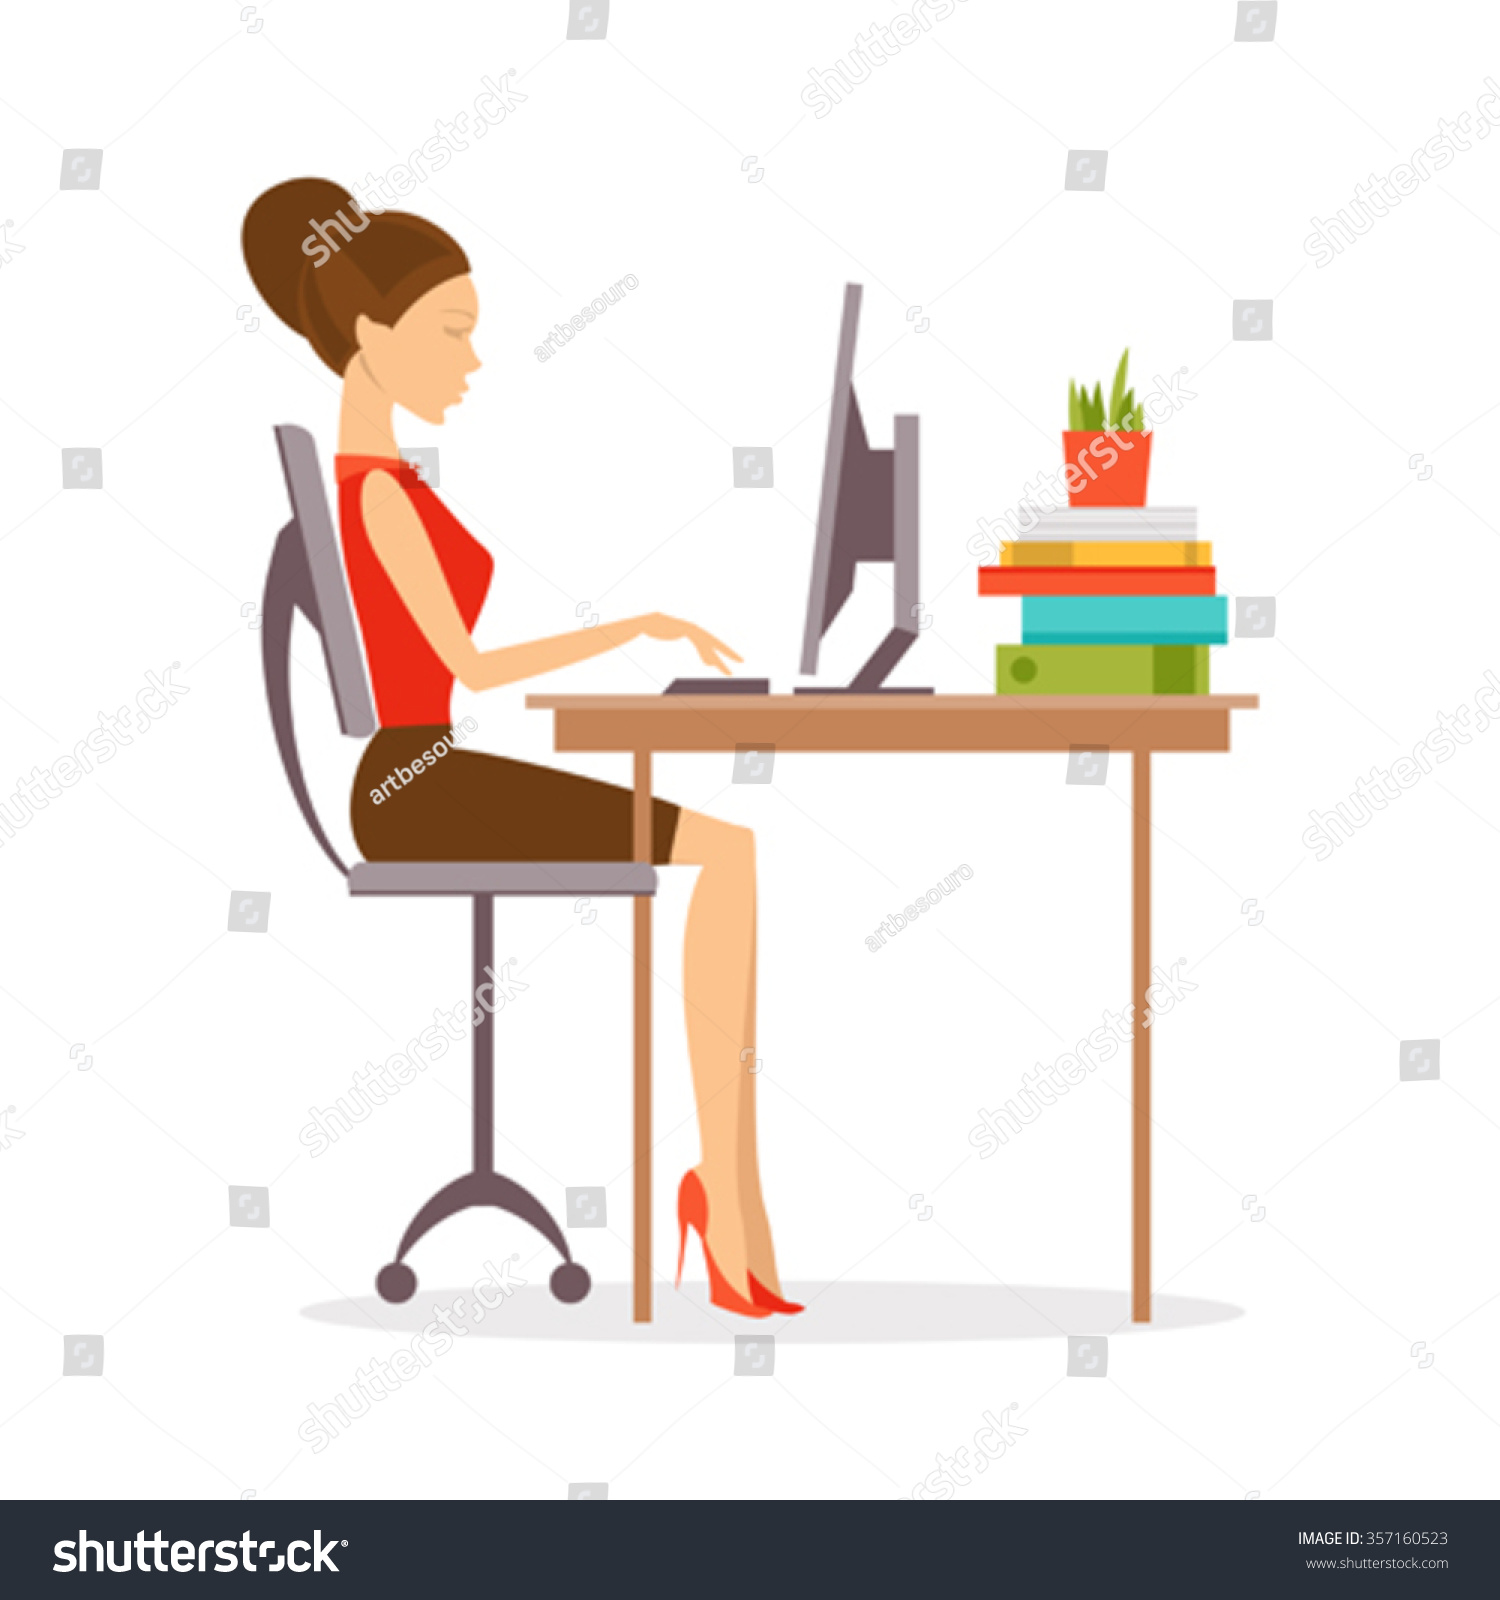 Woman Sitting Computer Correct Position Stock Vector